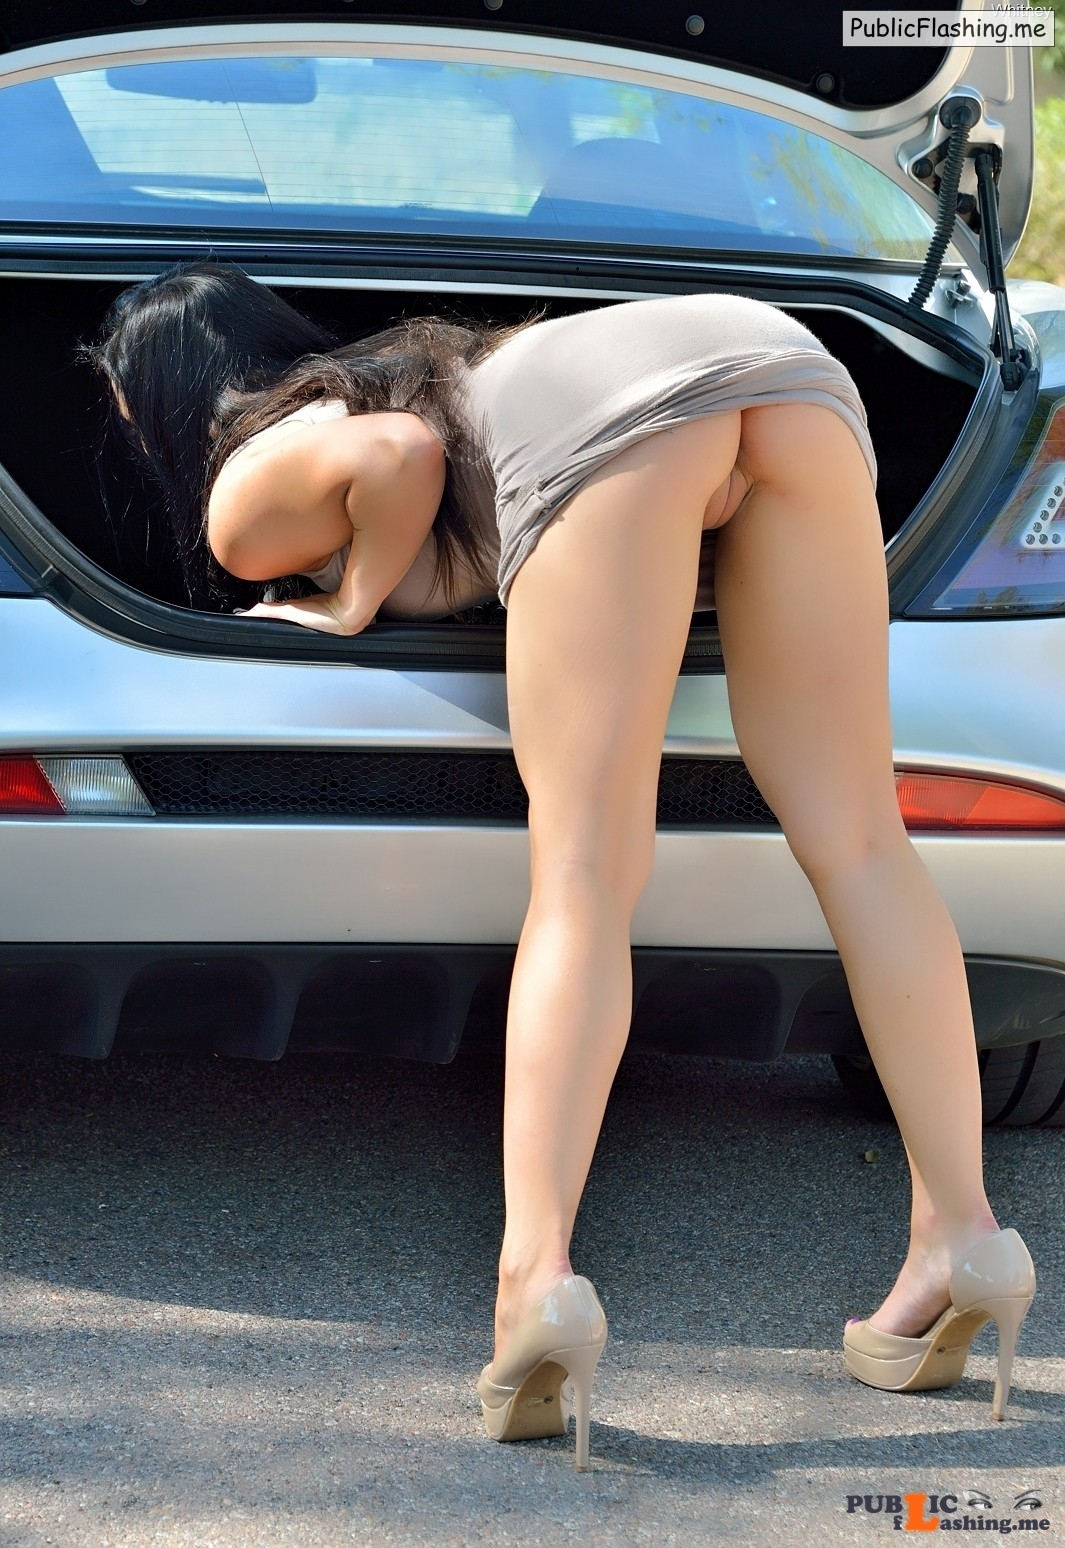 Pantieless bend over on parking ass flashing Public Flashing